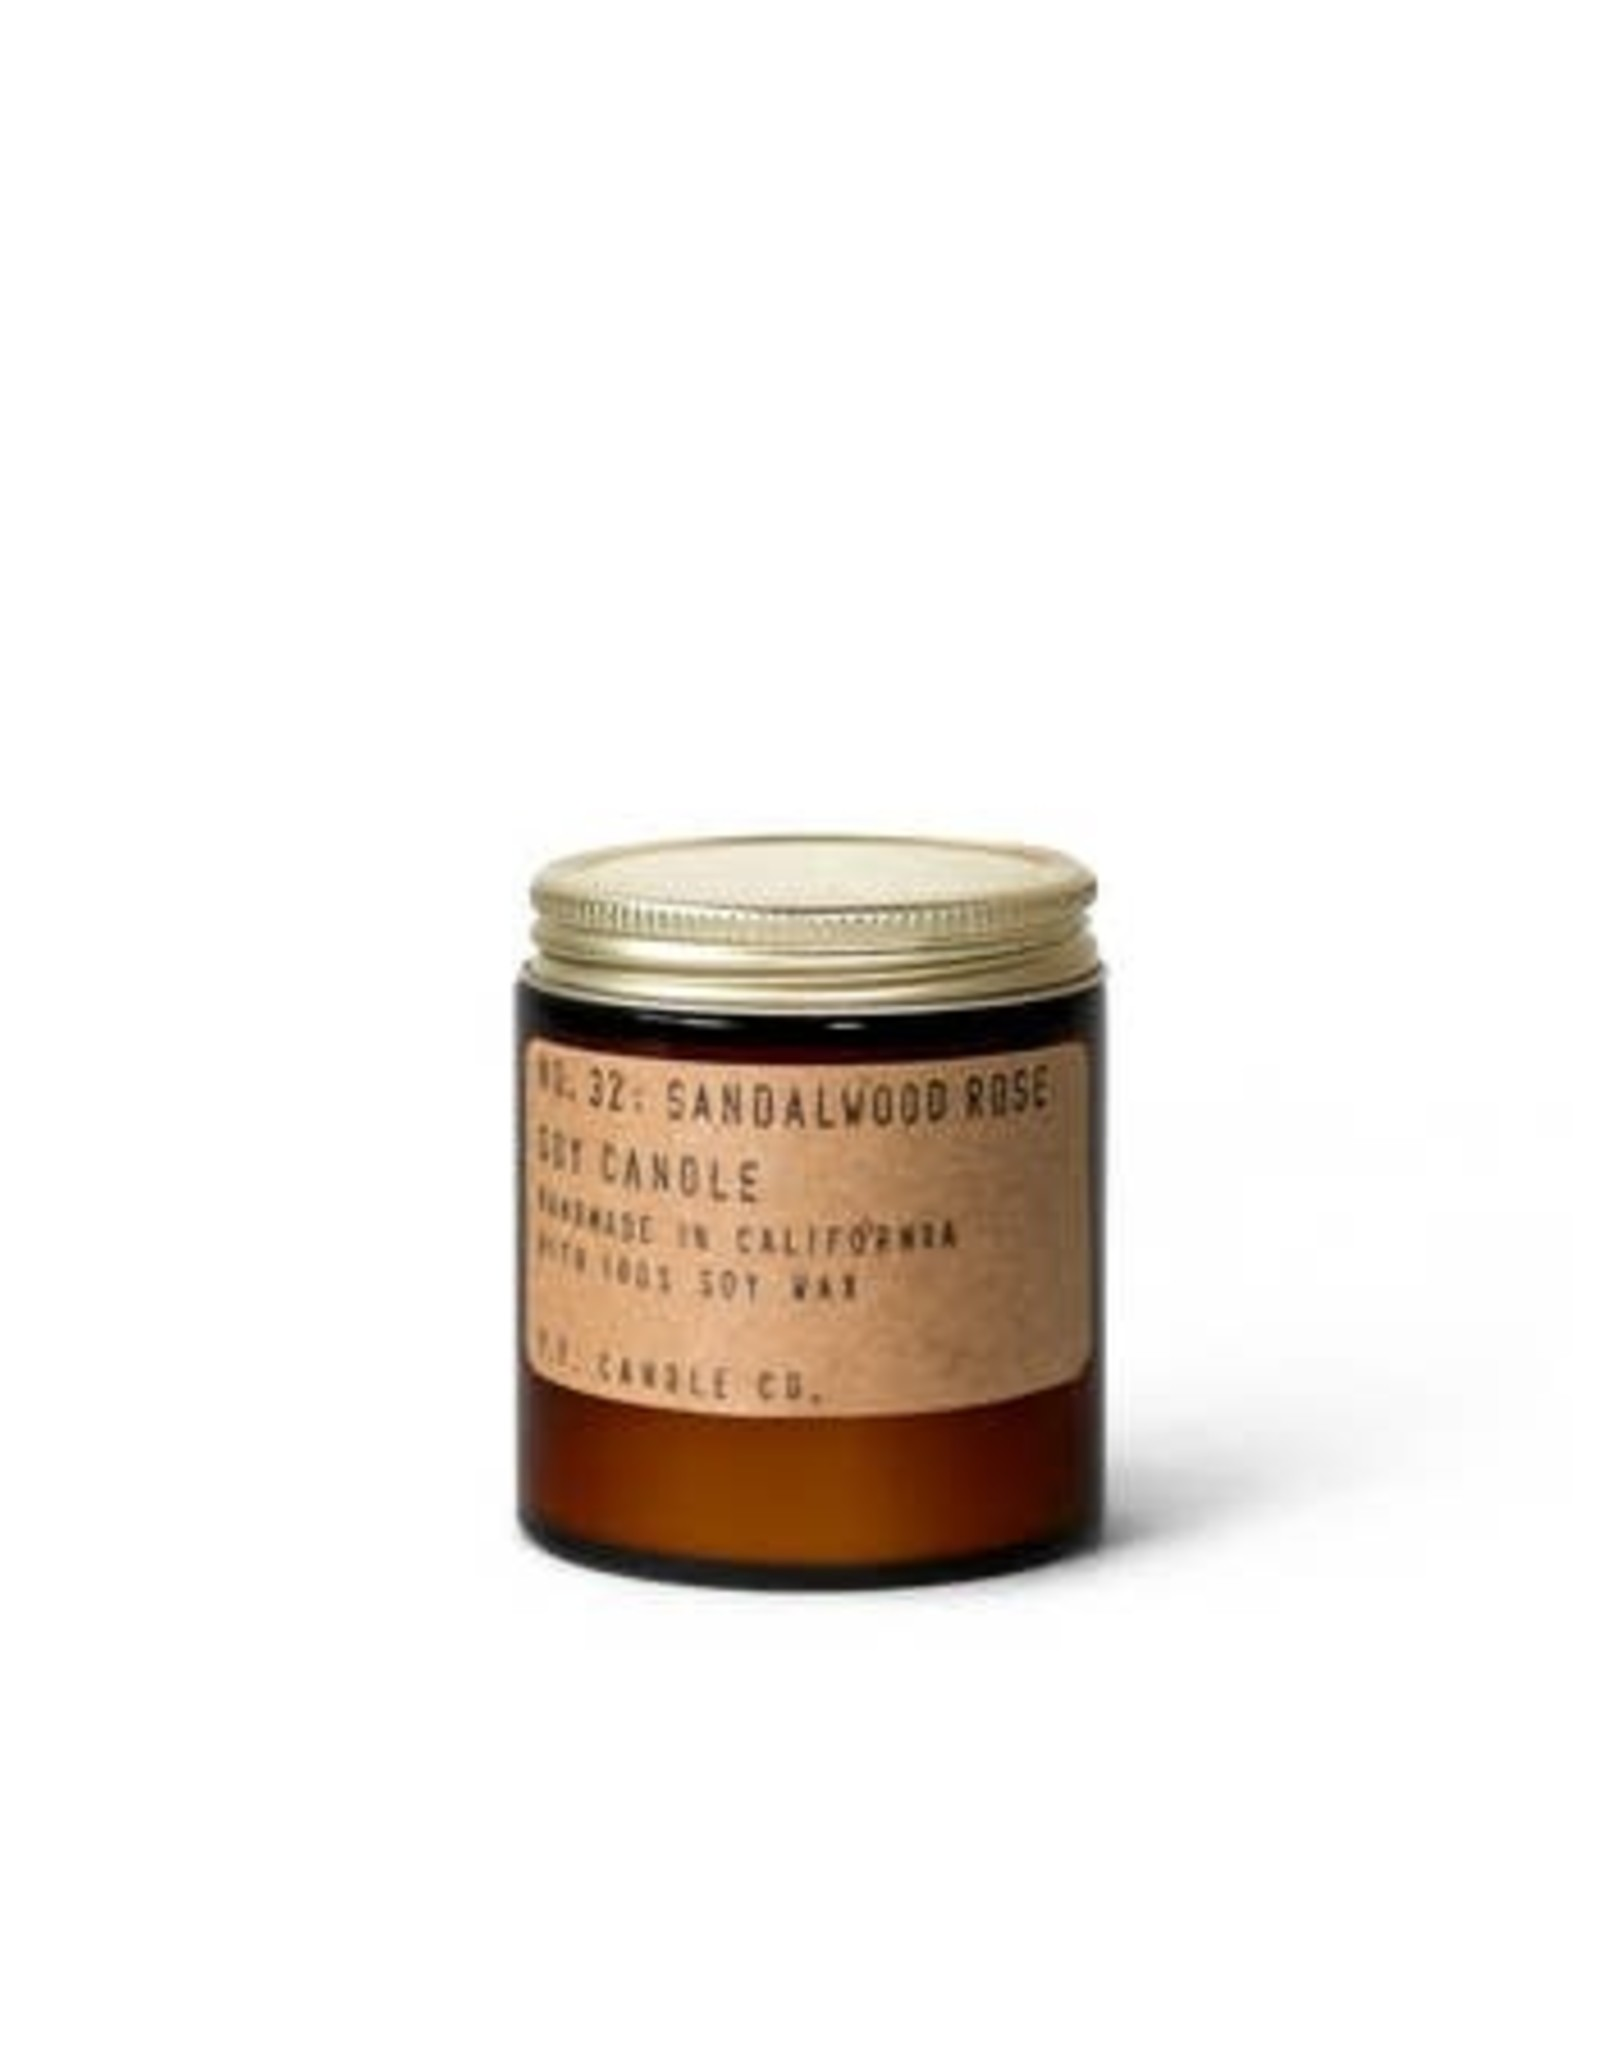 P.F. Candle Co. 3.5 oz Soy Candle - Sandlewood Rose